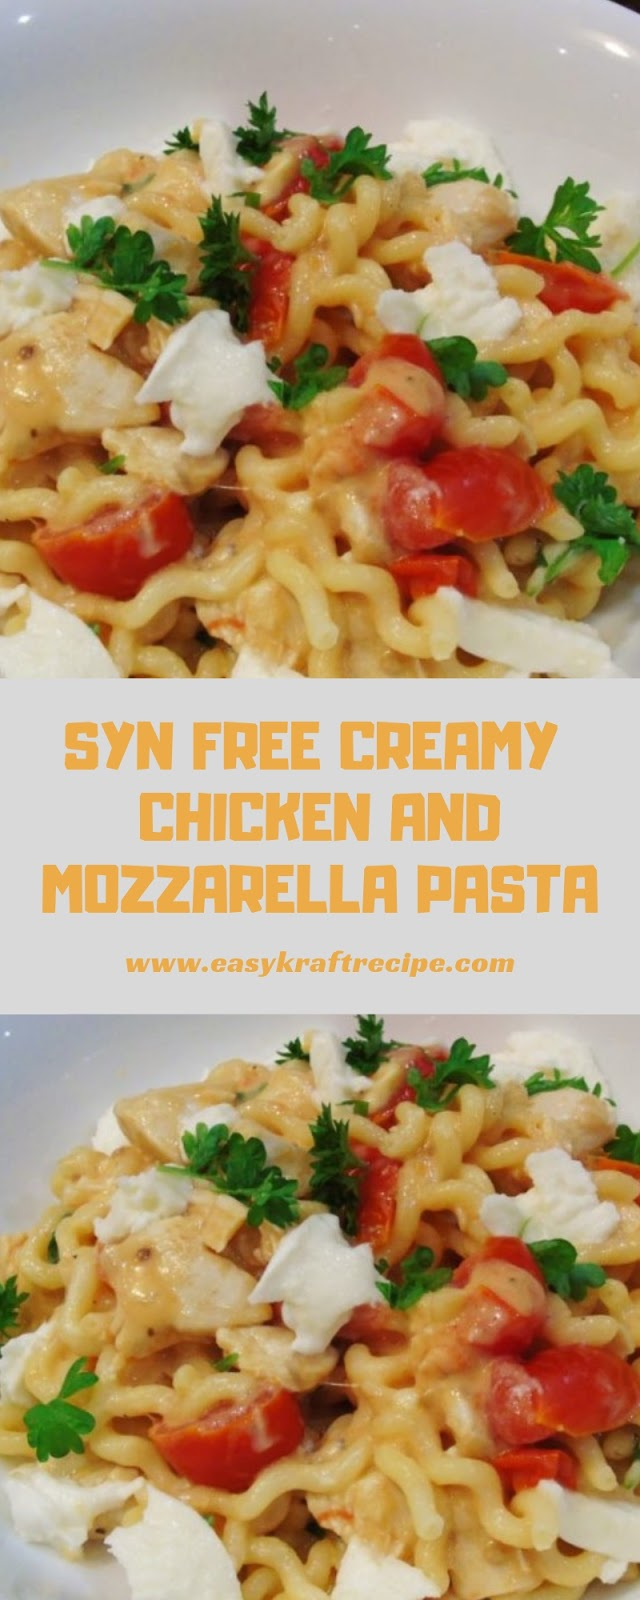 SYN FREE CREAMY CHICKEN AND MOZZARELLA PASTA